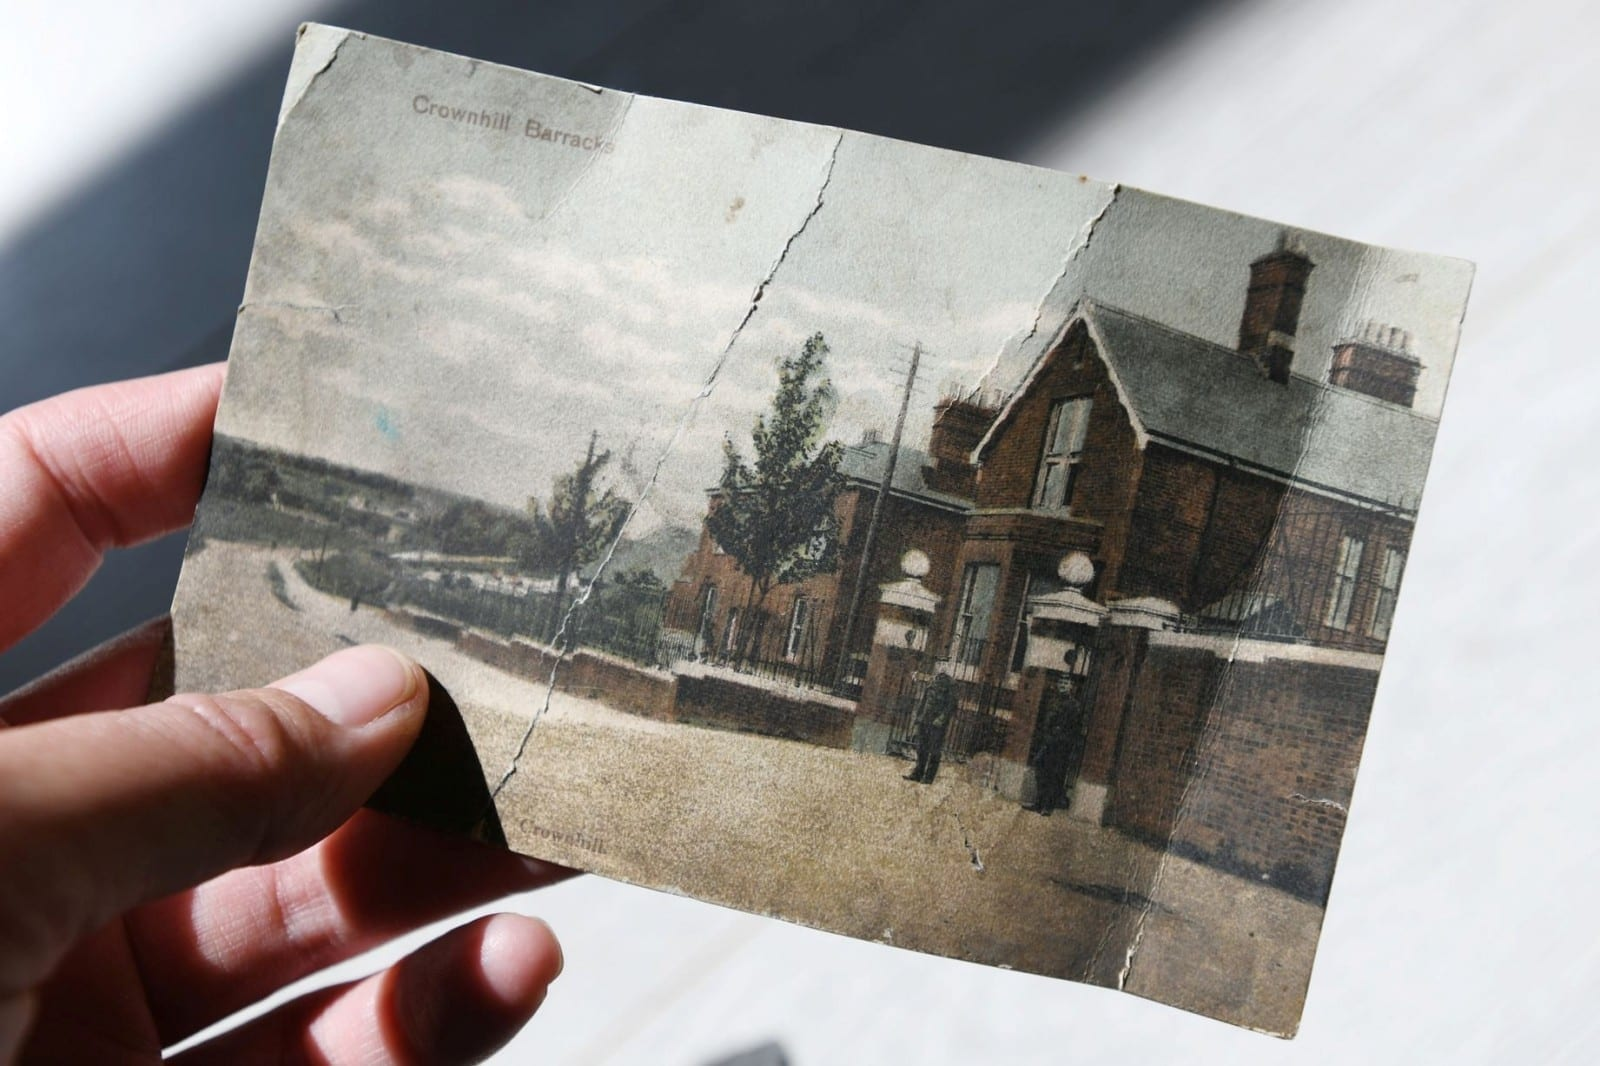 Royal Mail Finally Delivers Postcard 112 YEARS Late